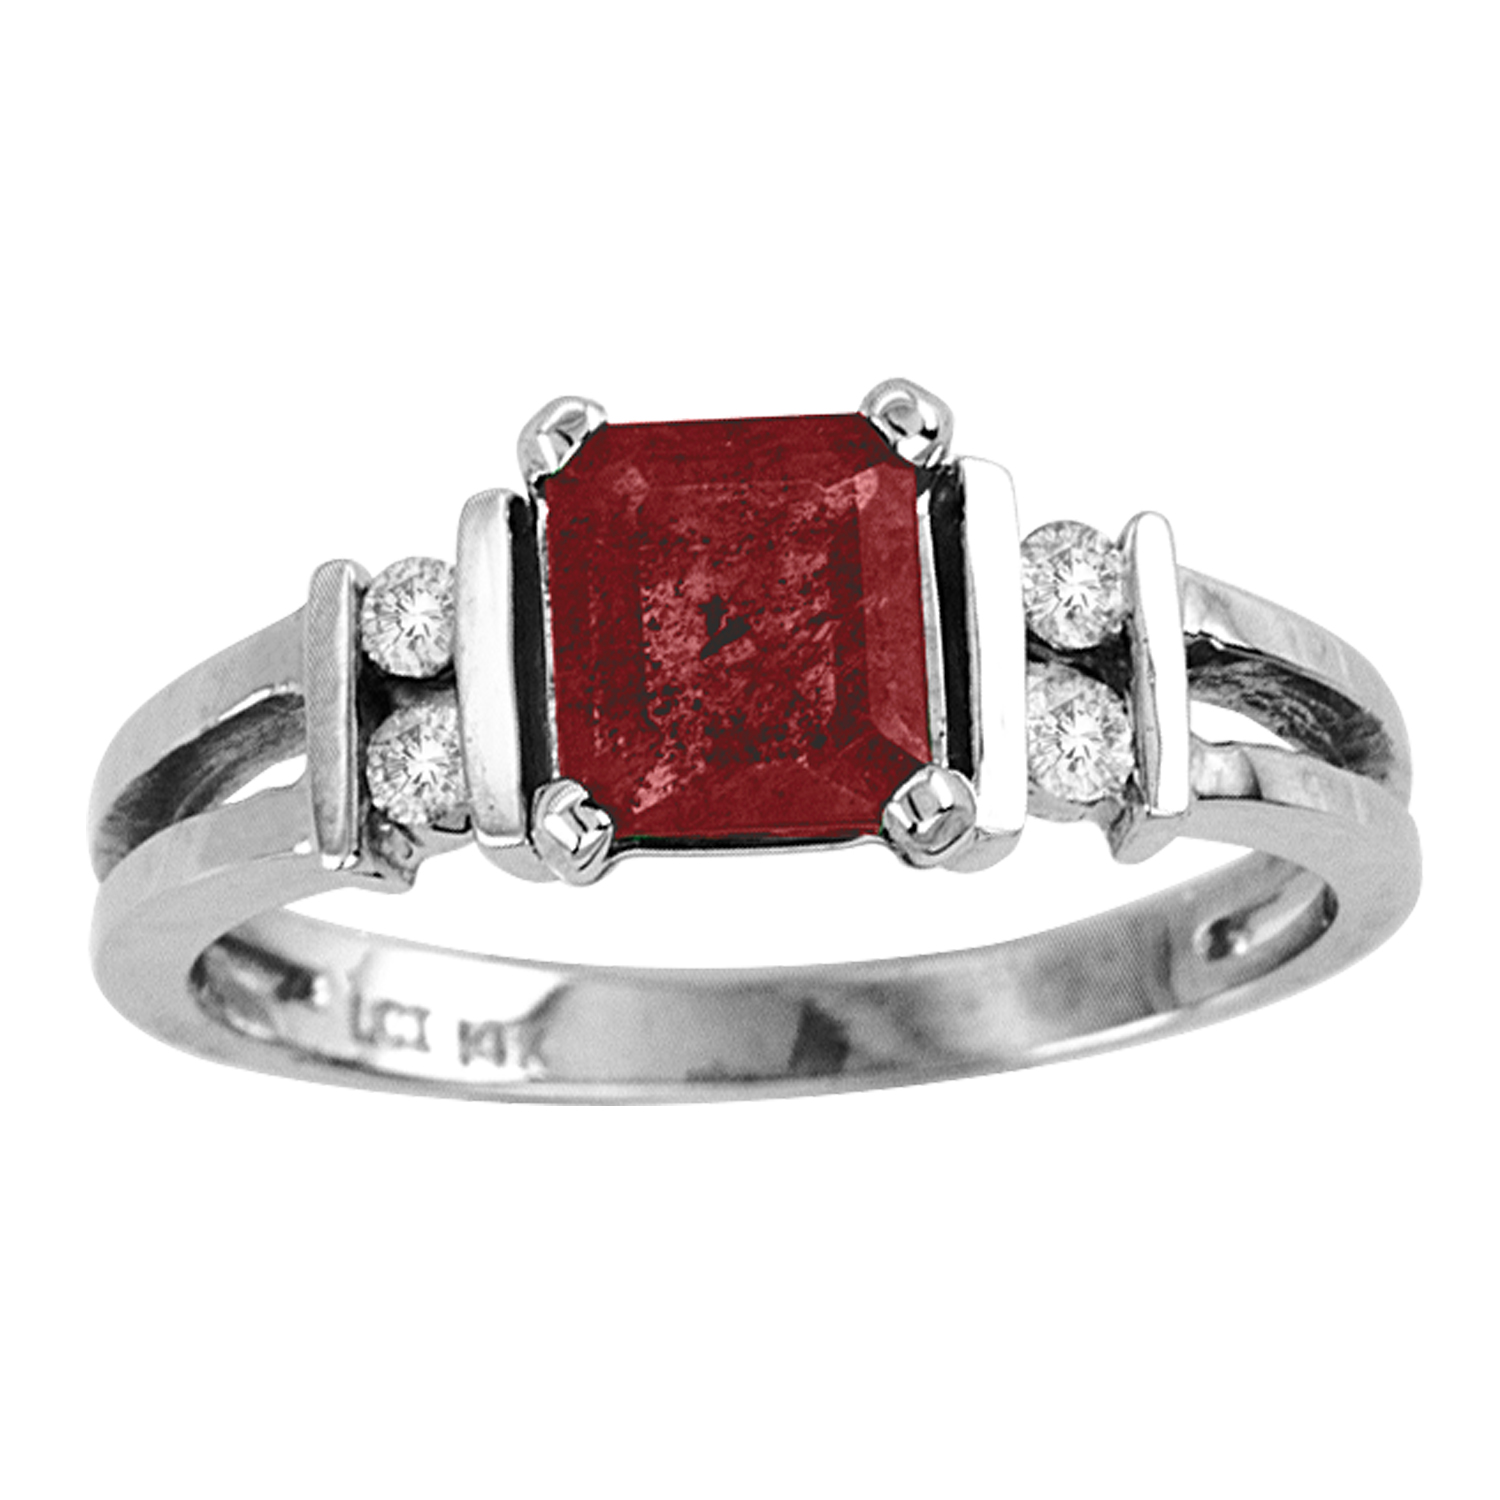 View 1.10cttw Diamond and Natural Heated Ruby Ring set in 14k Gold